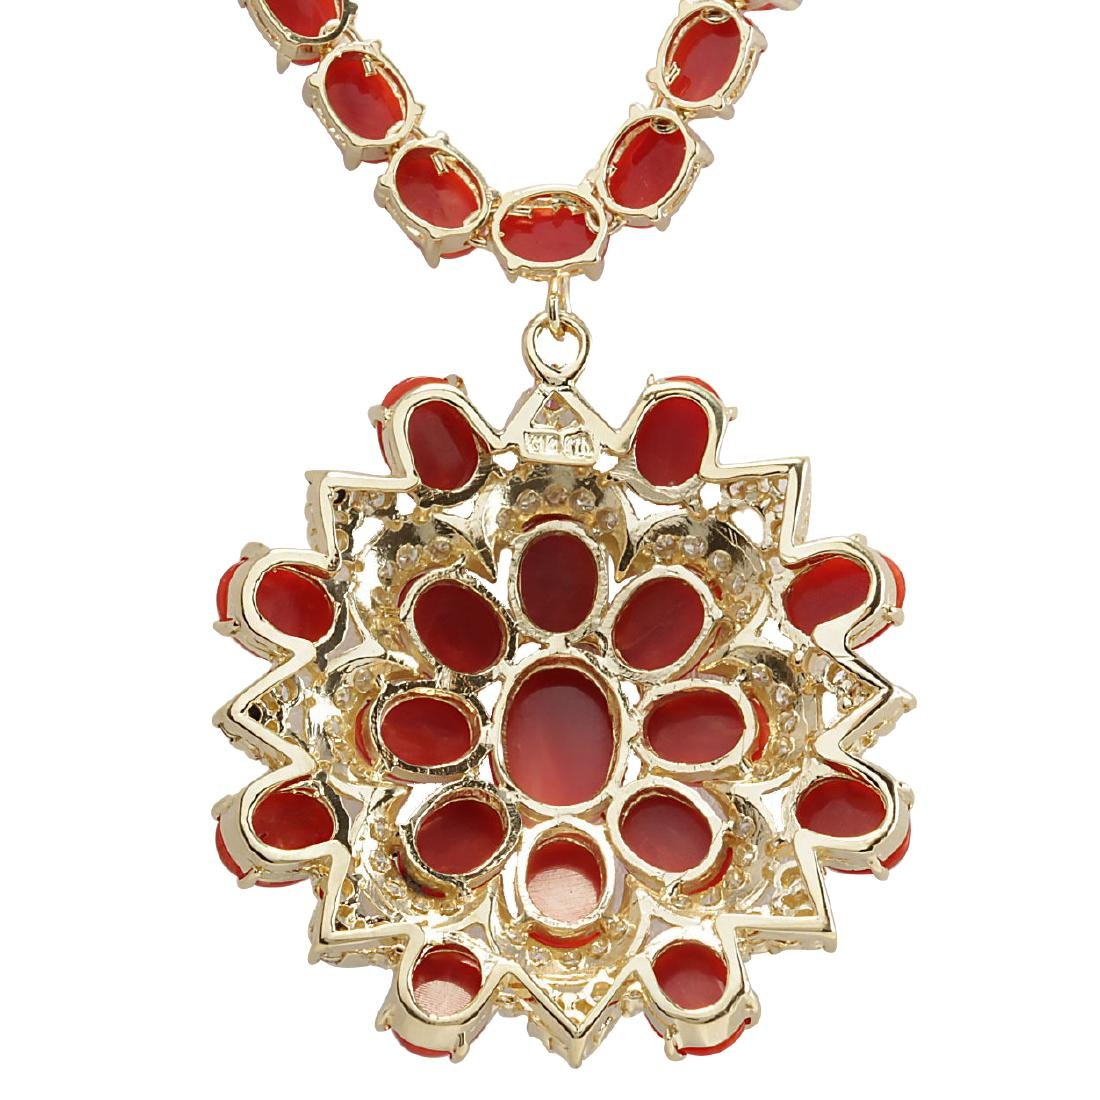 67.80CTW Natural Red Coral And Diamond Necklace In 18K - 2